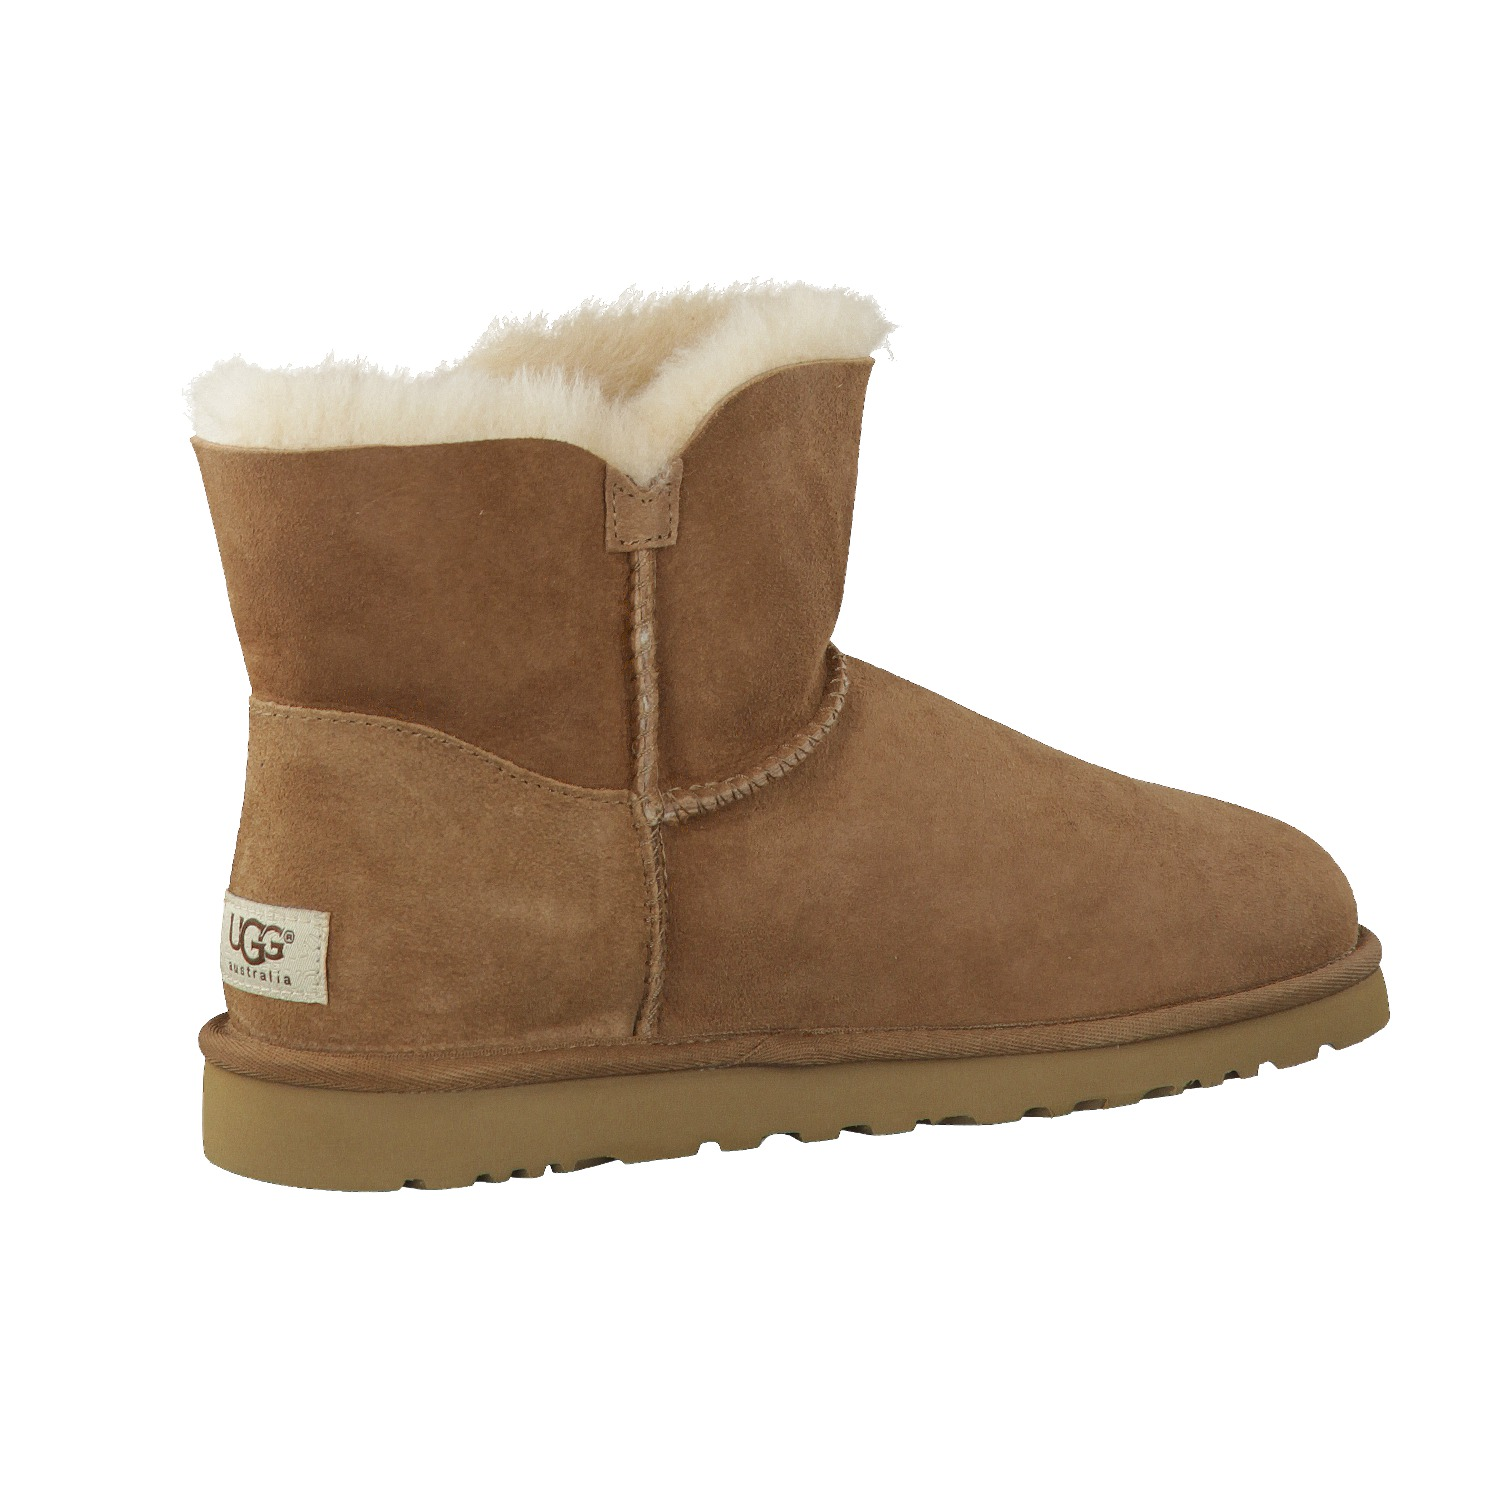 UGG chestnut mini bailey button bottes